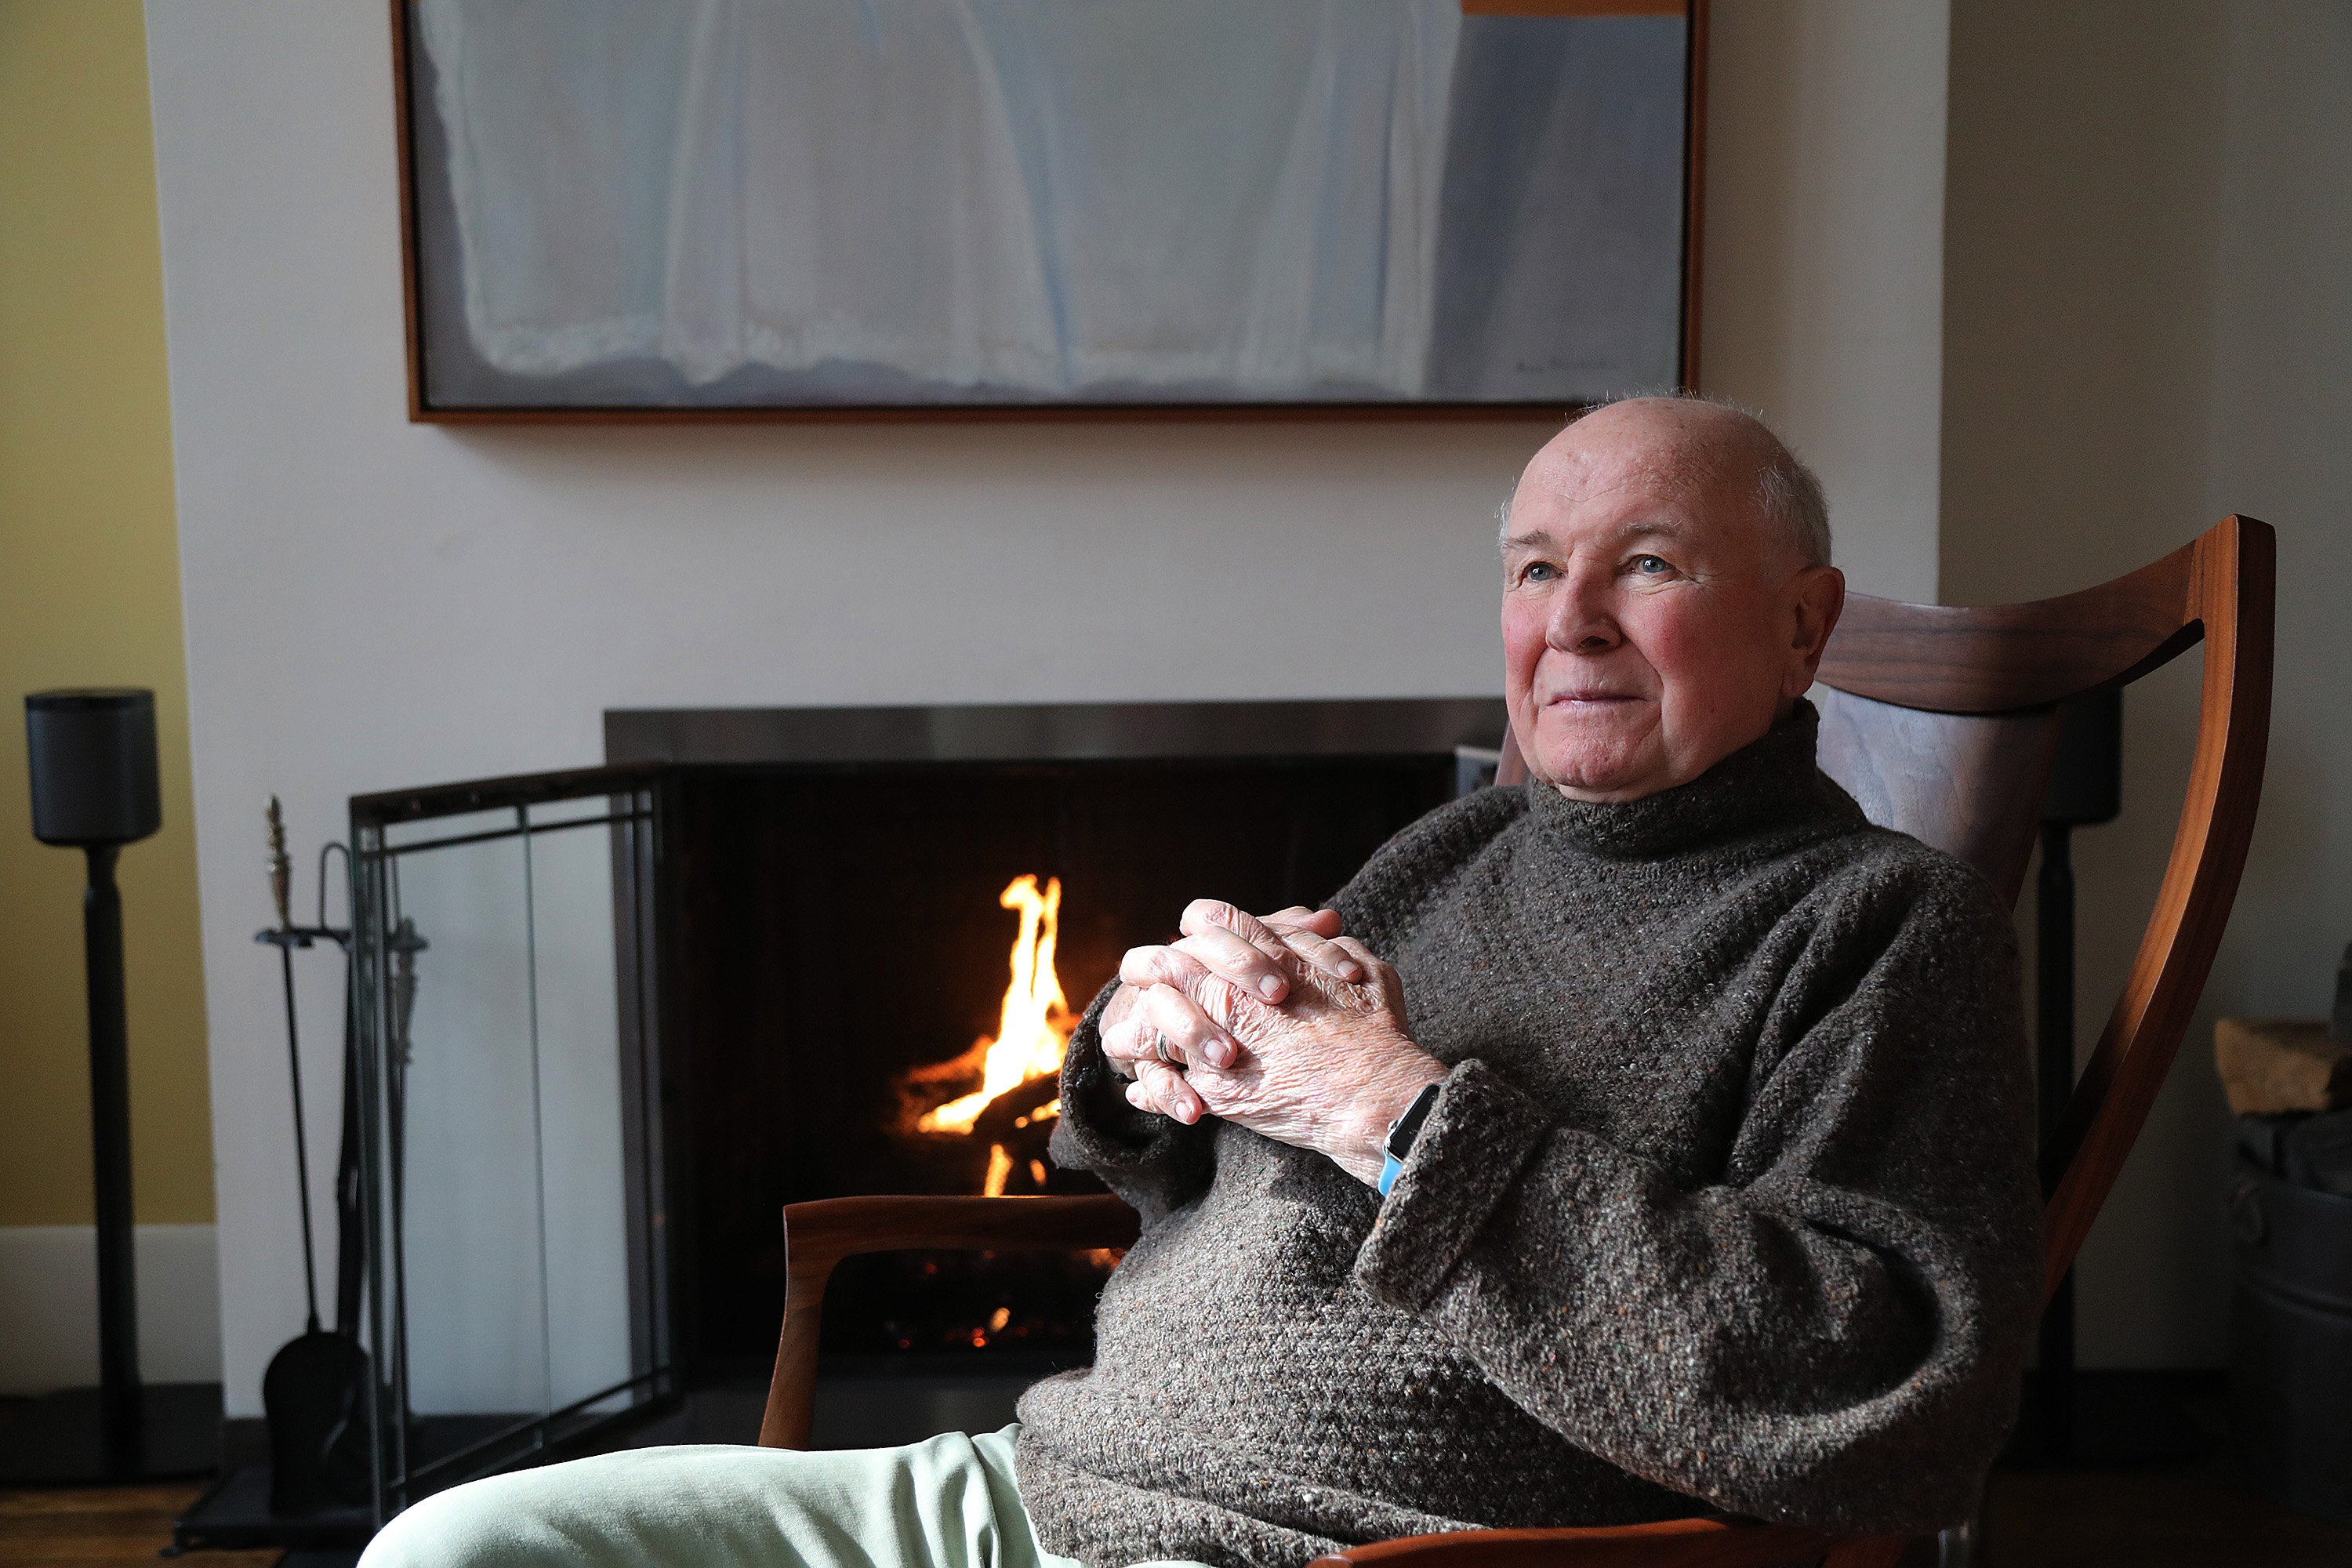 Playwright Terrence McNally appears in a portrait taken in his home on March 2, 2020, in New York City. | Source: Getty Images.